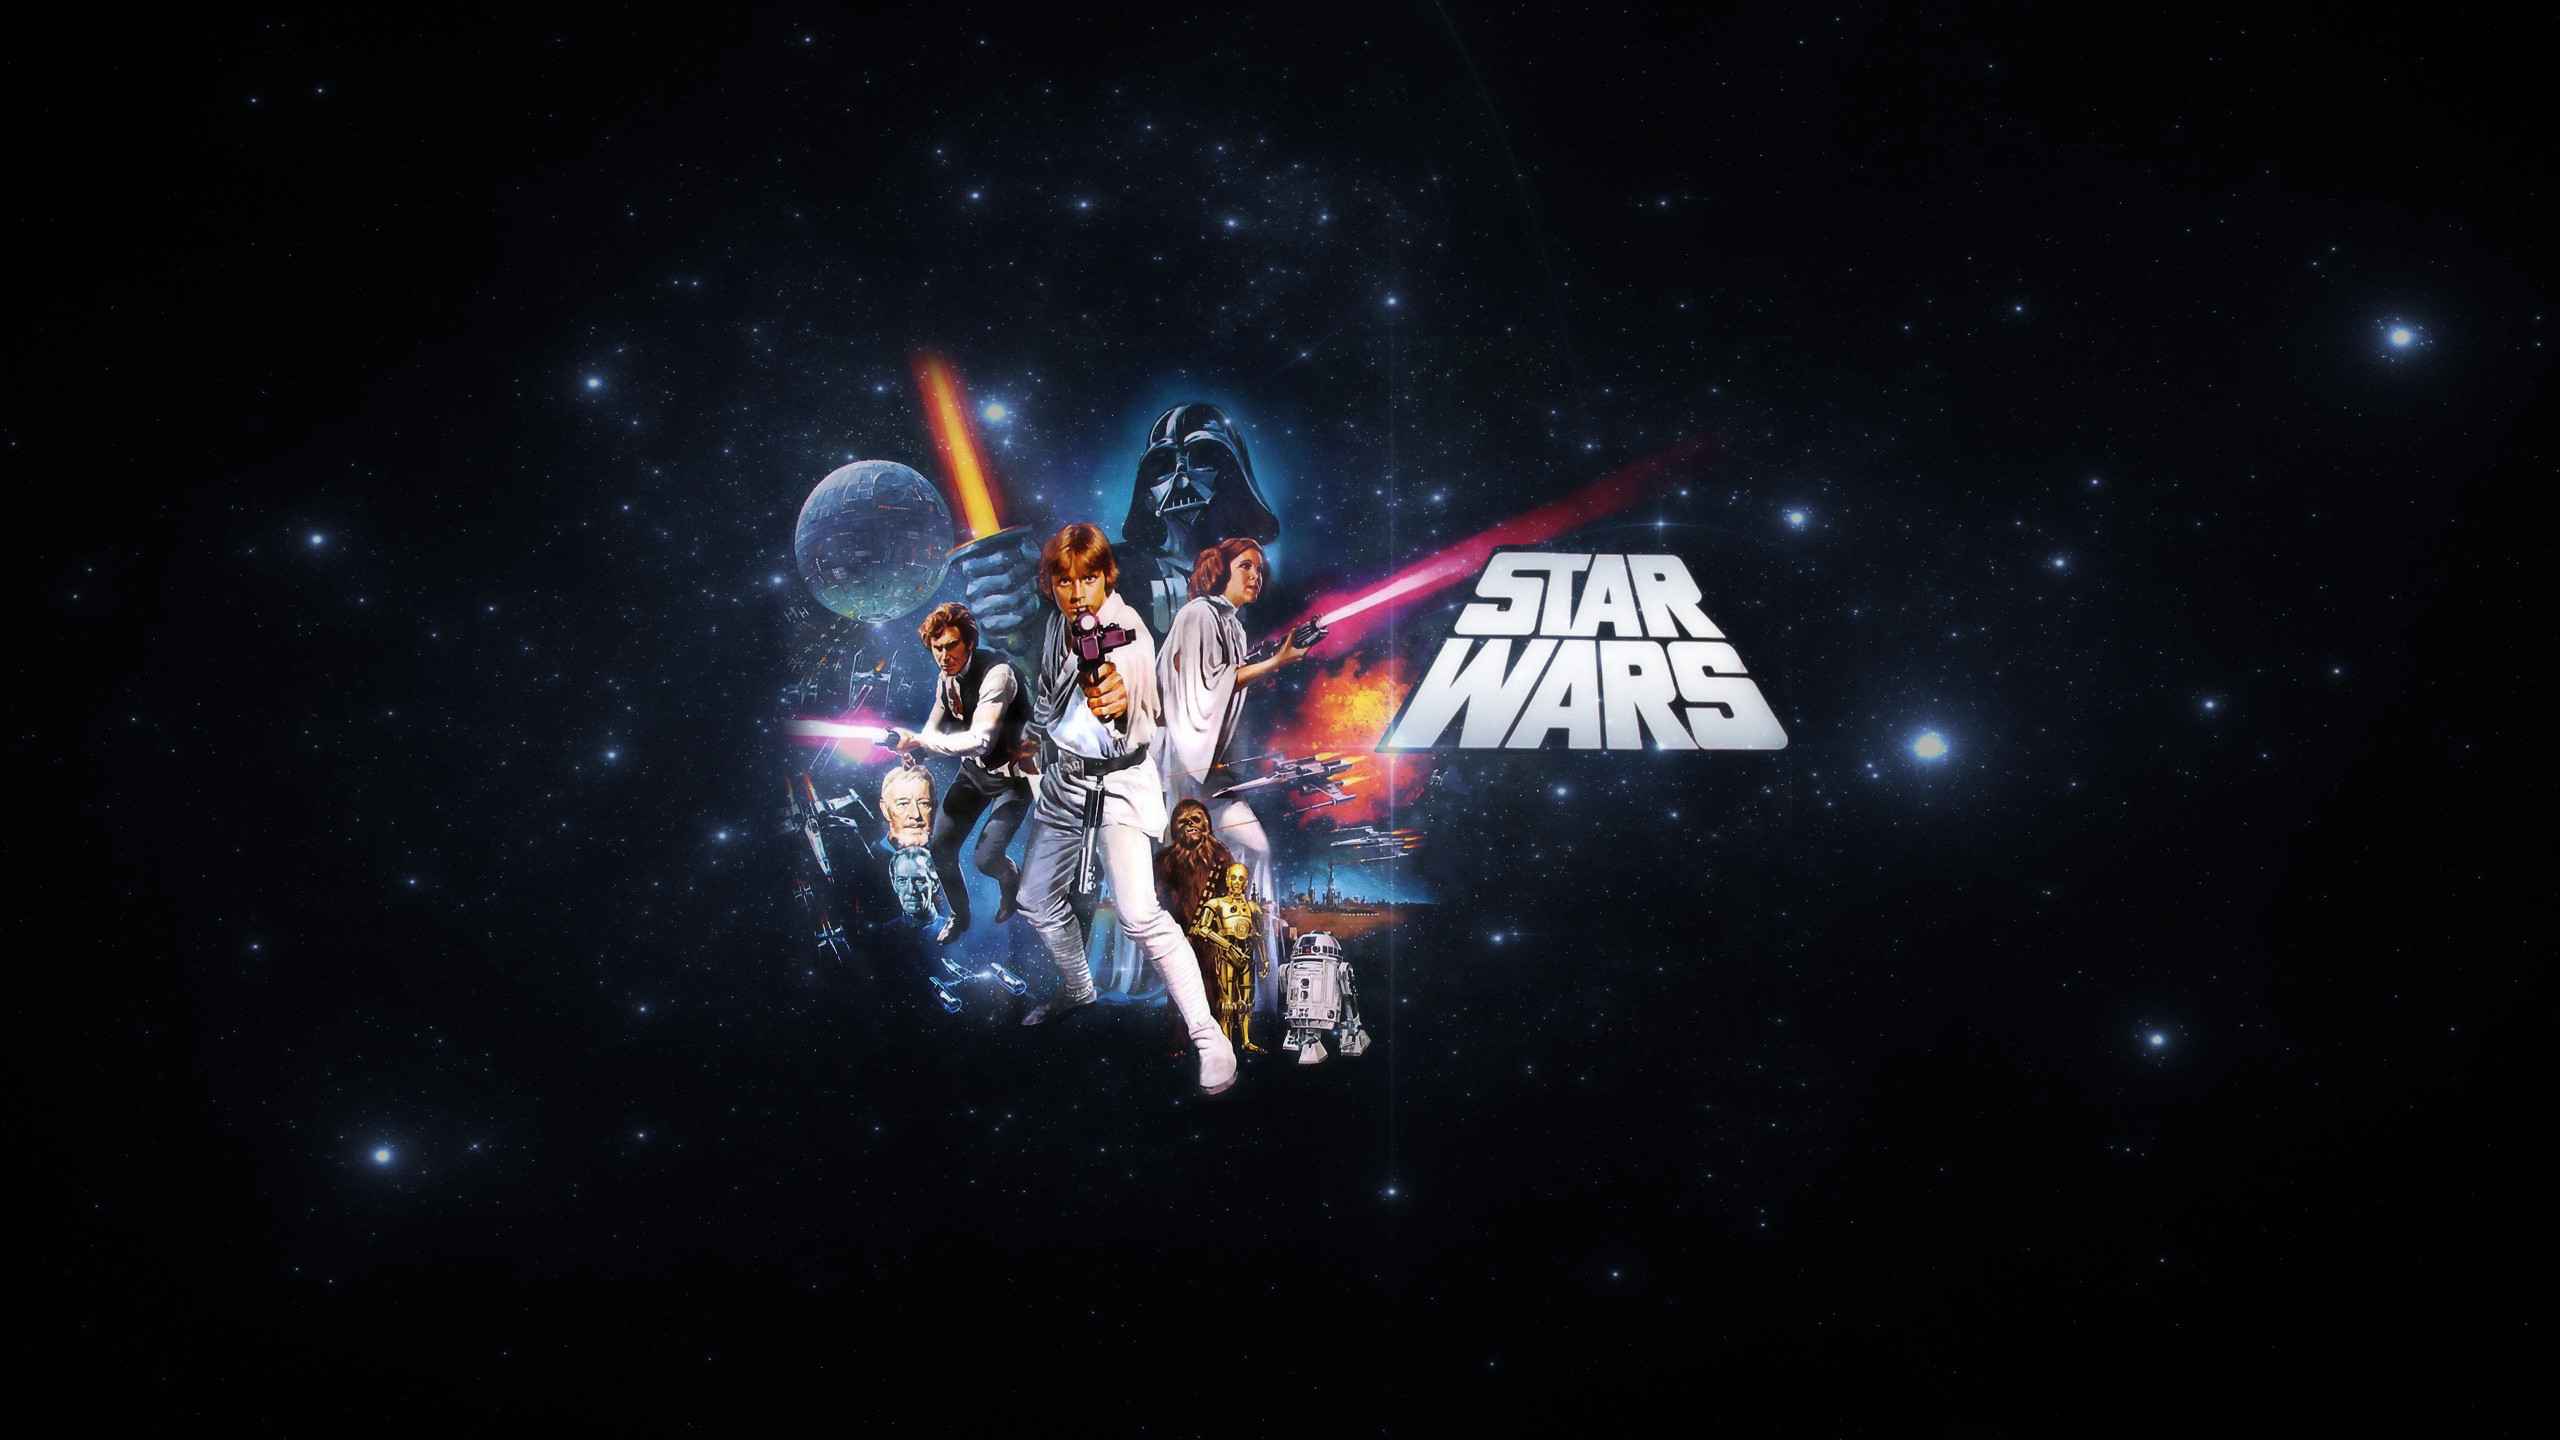 Star Wars A New Hope Wallpaper Posted By Zoey Thompson